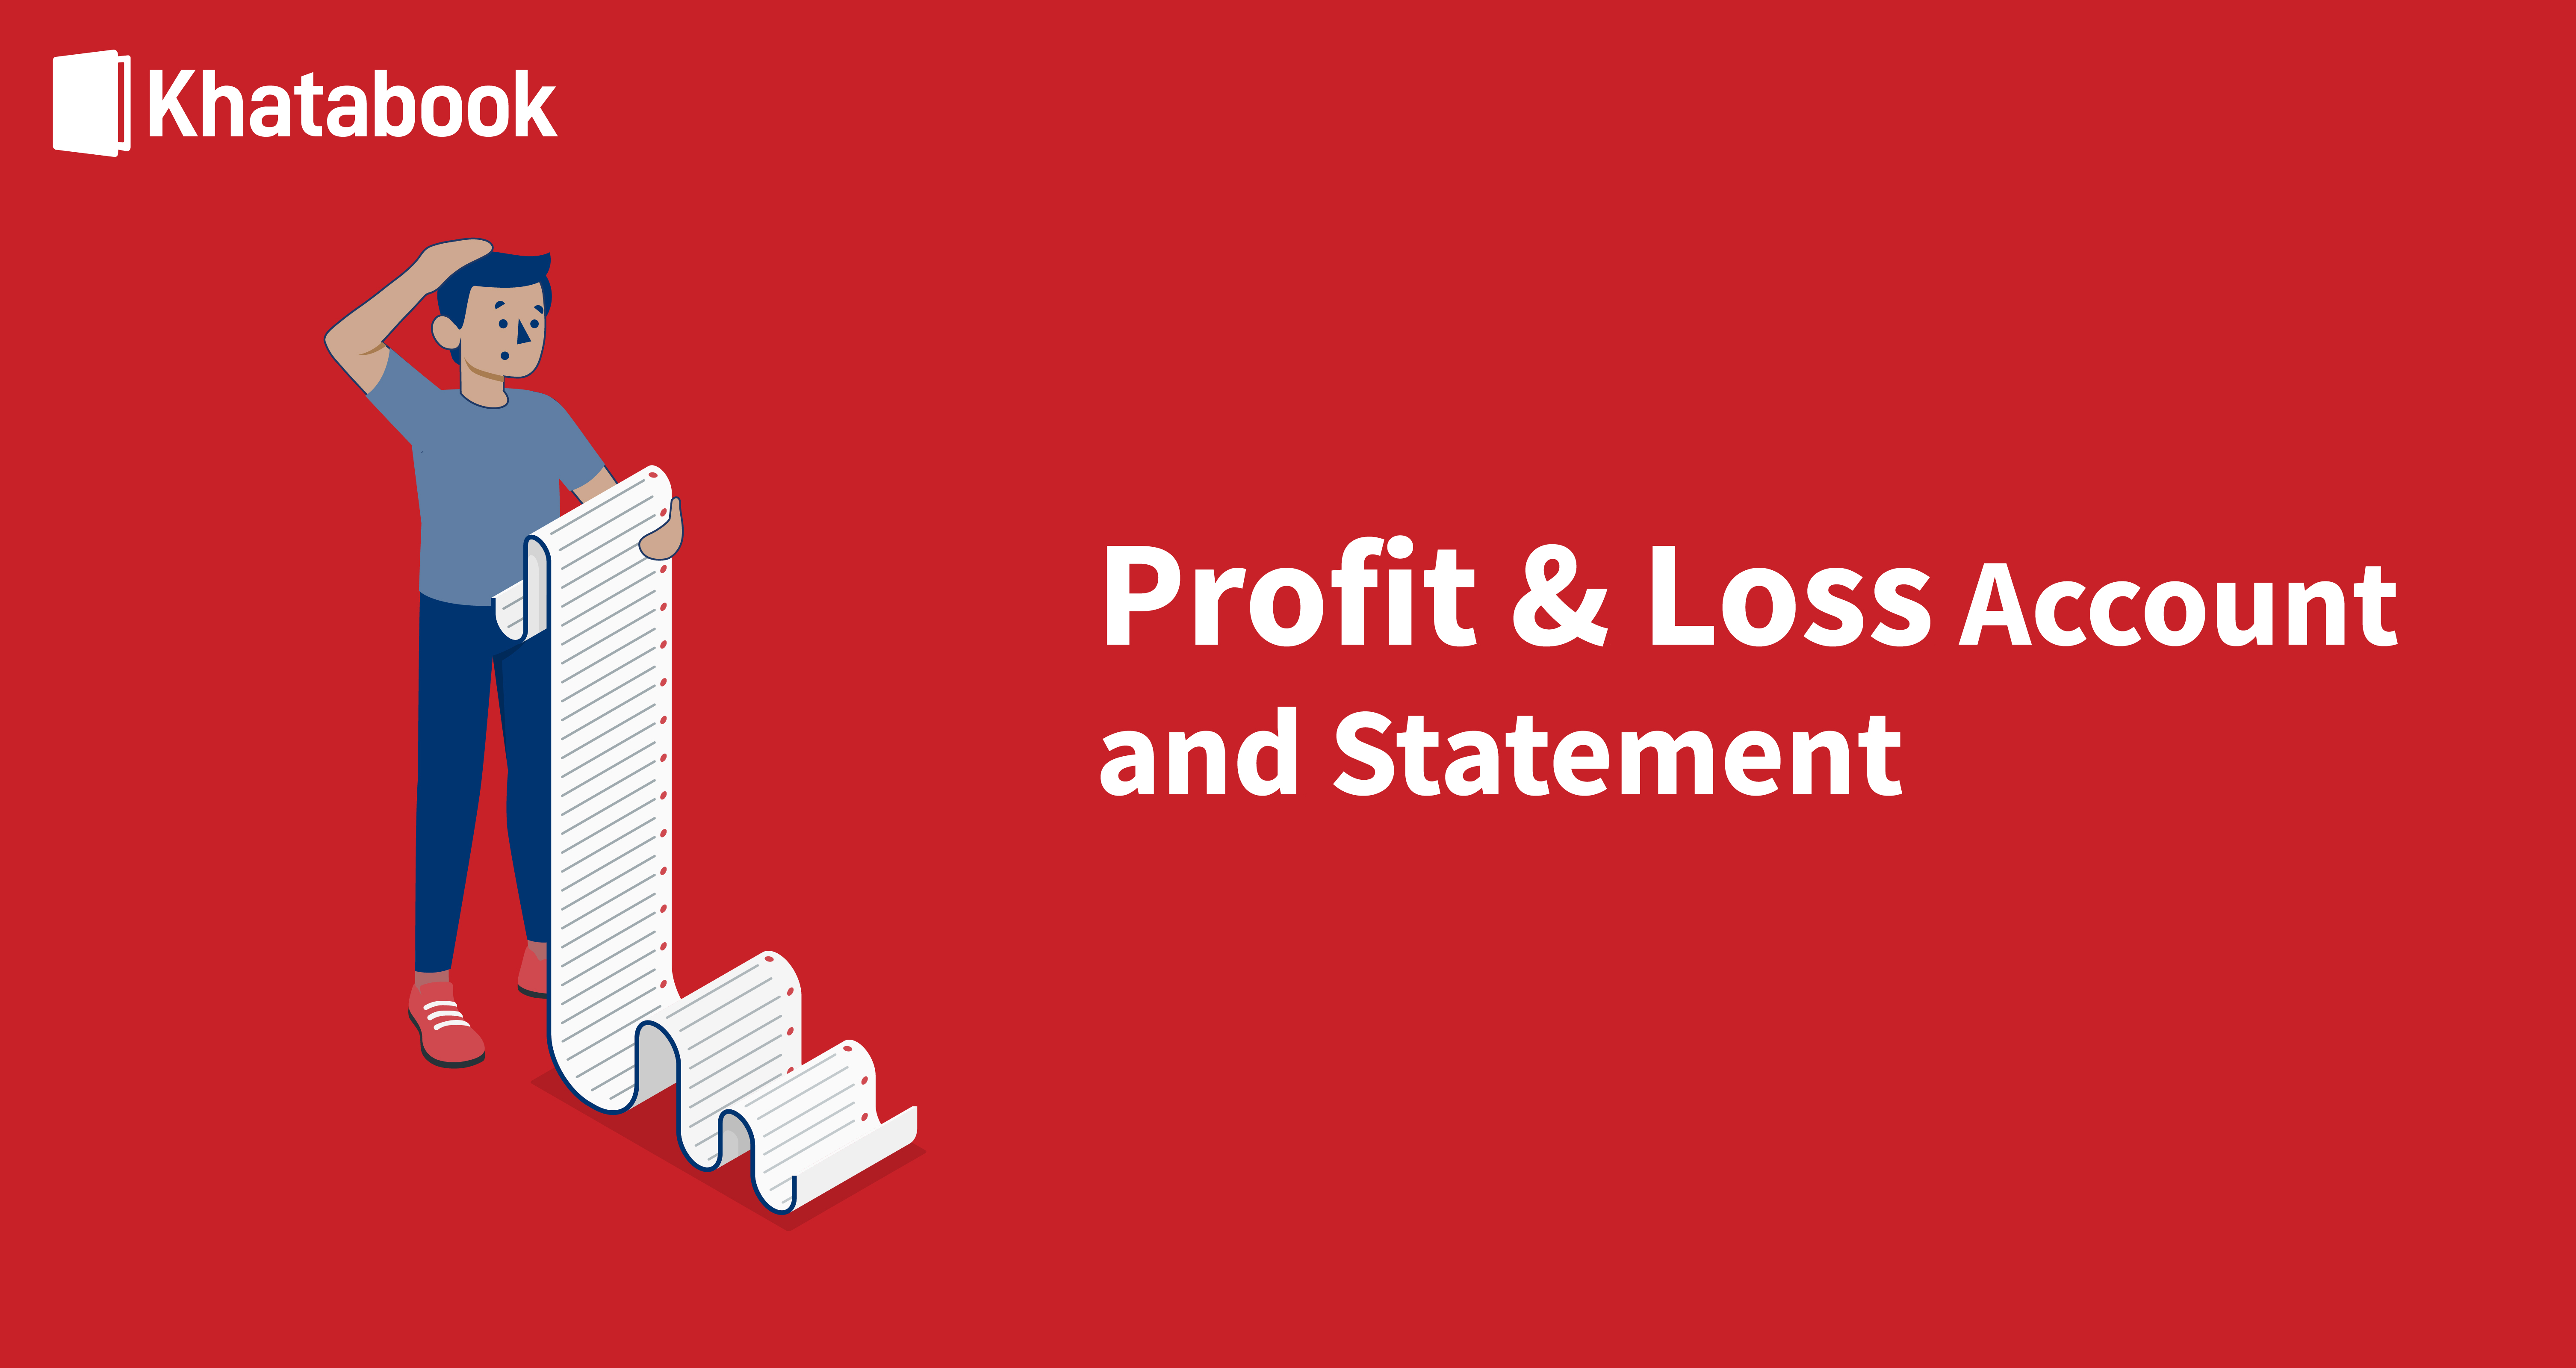 Profit and Loss Account & Statement